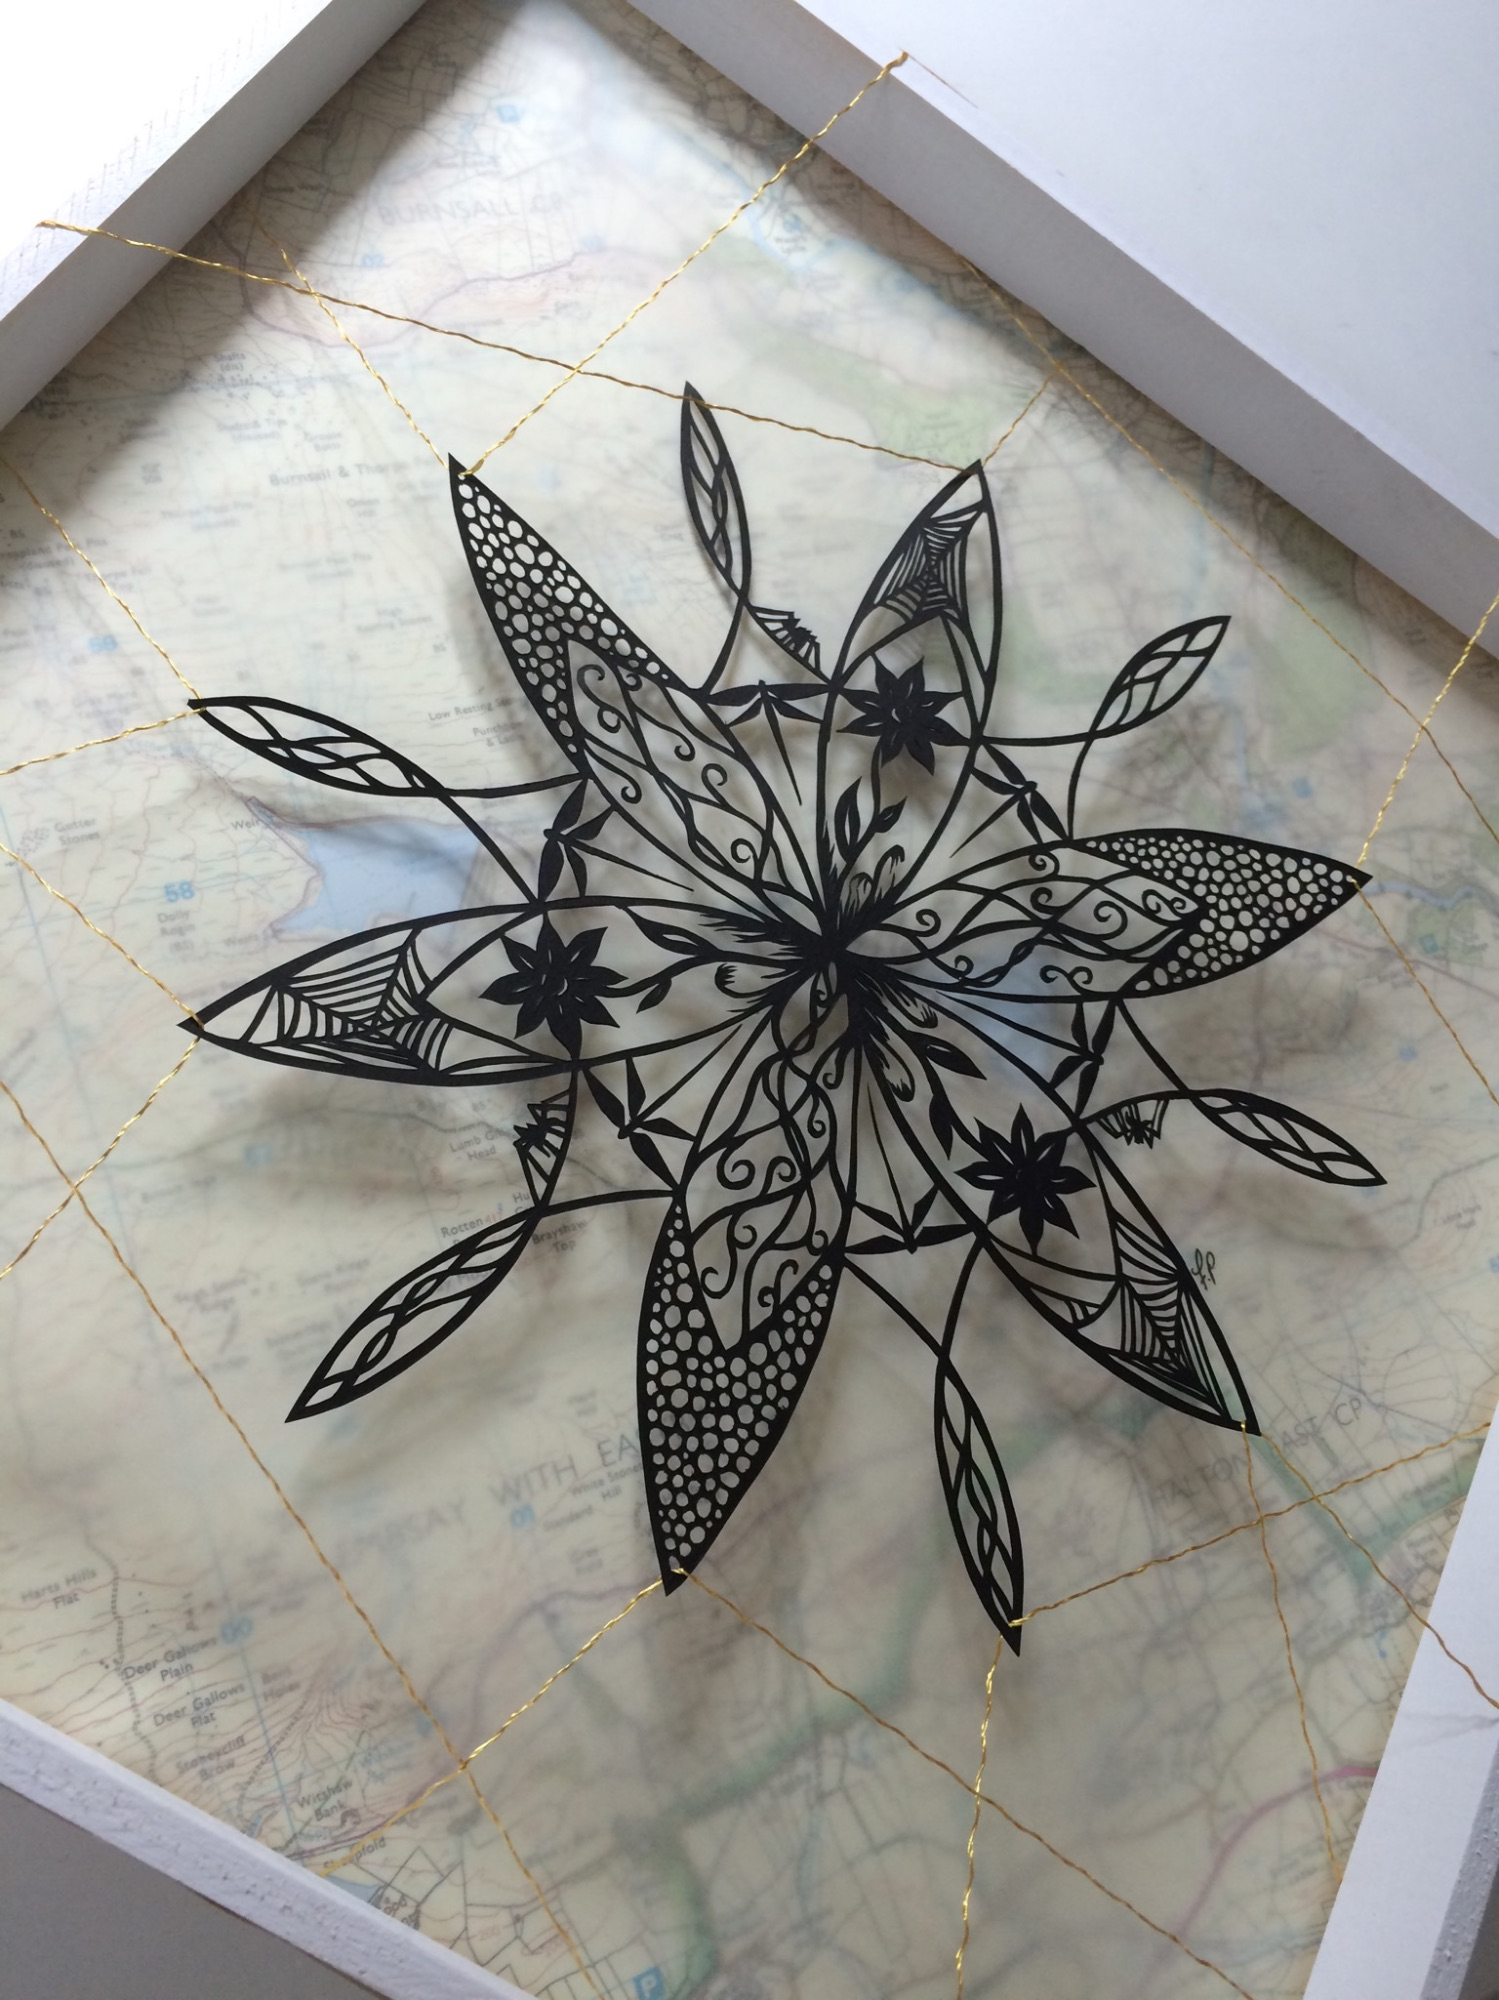 Somnium IV - Suspended Papercut by Frances Payne